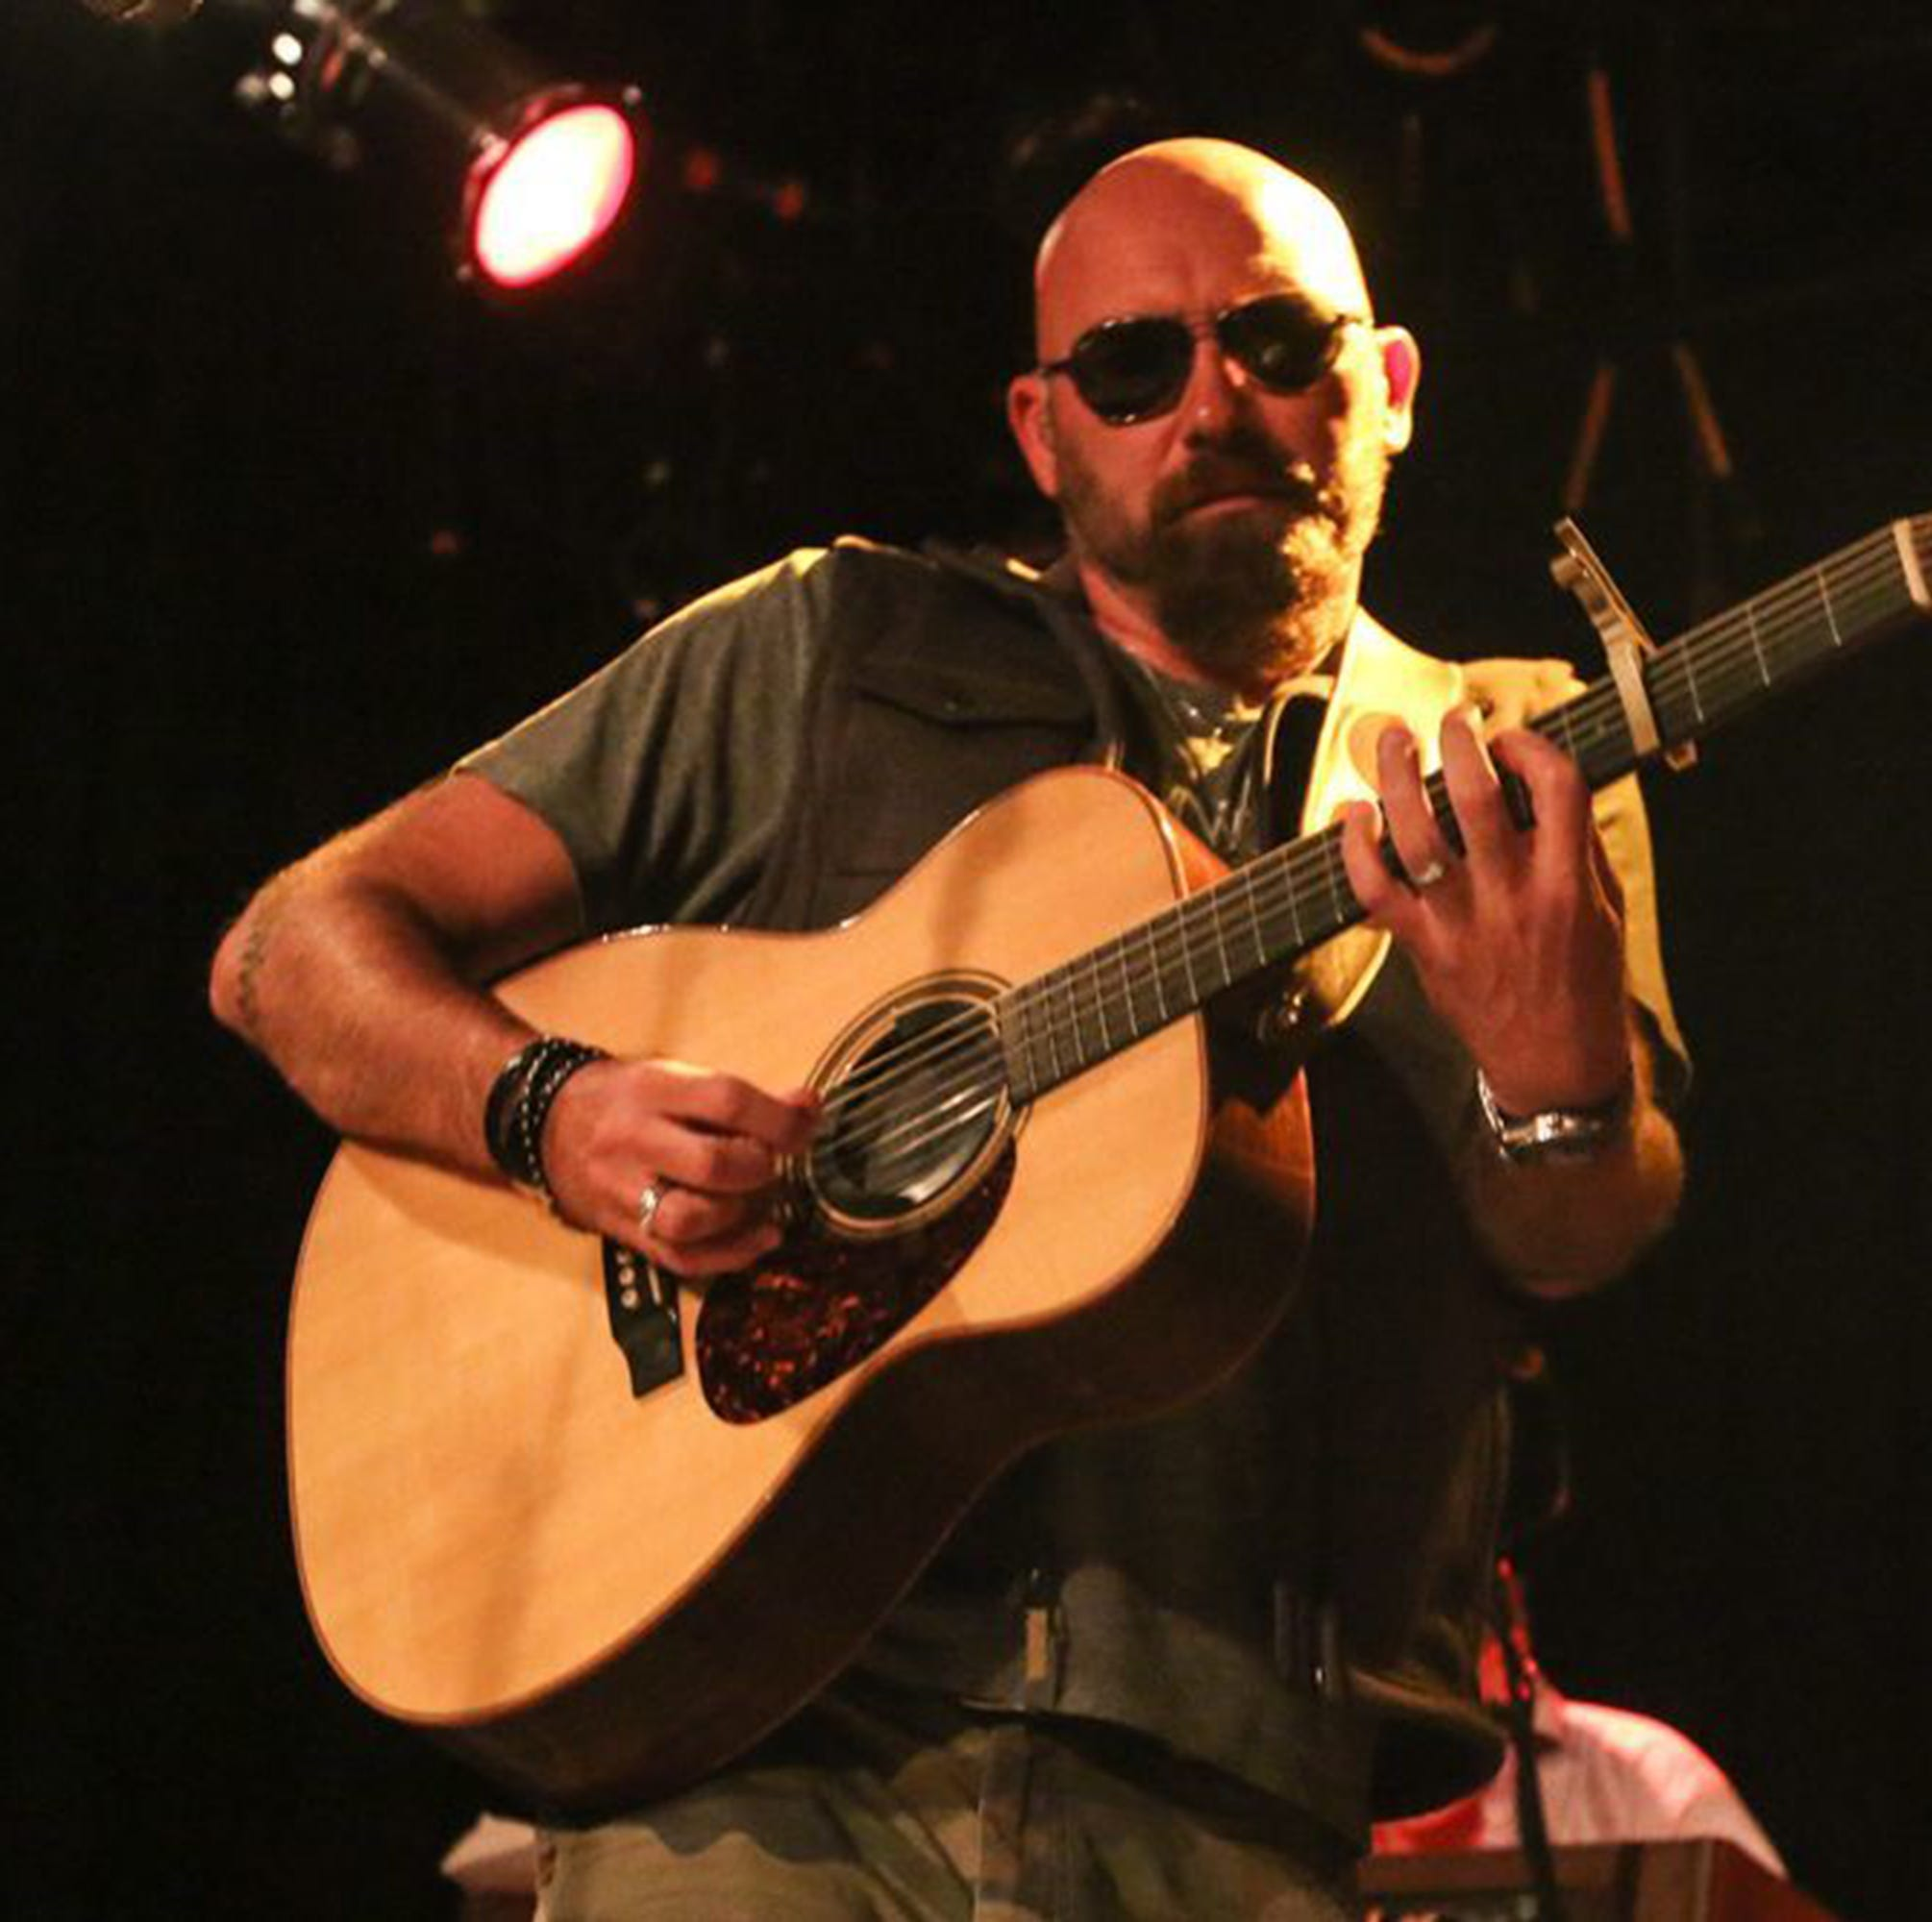 Corey Smith headlining at River Jam Music Festival